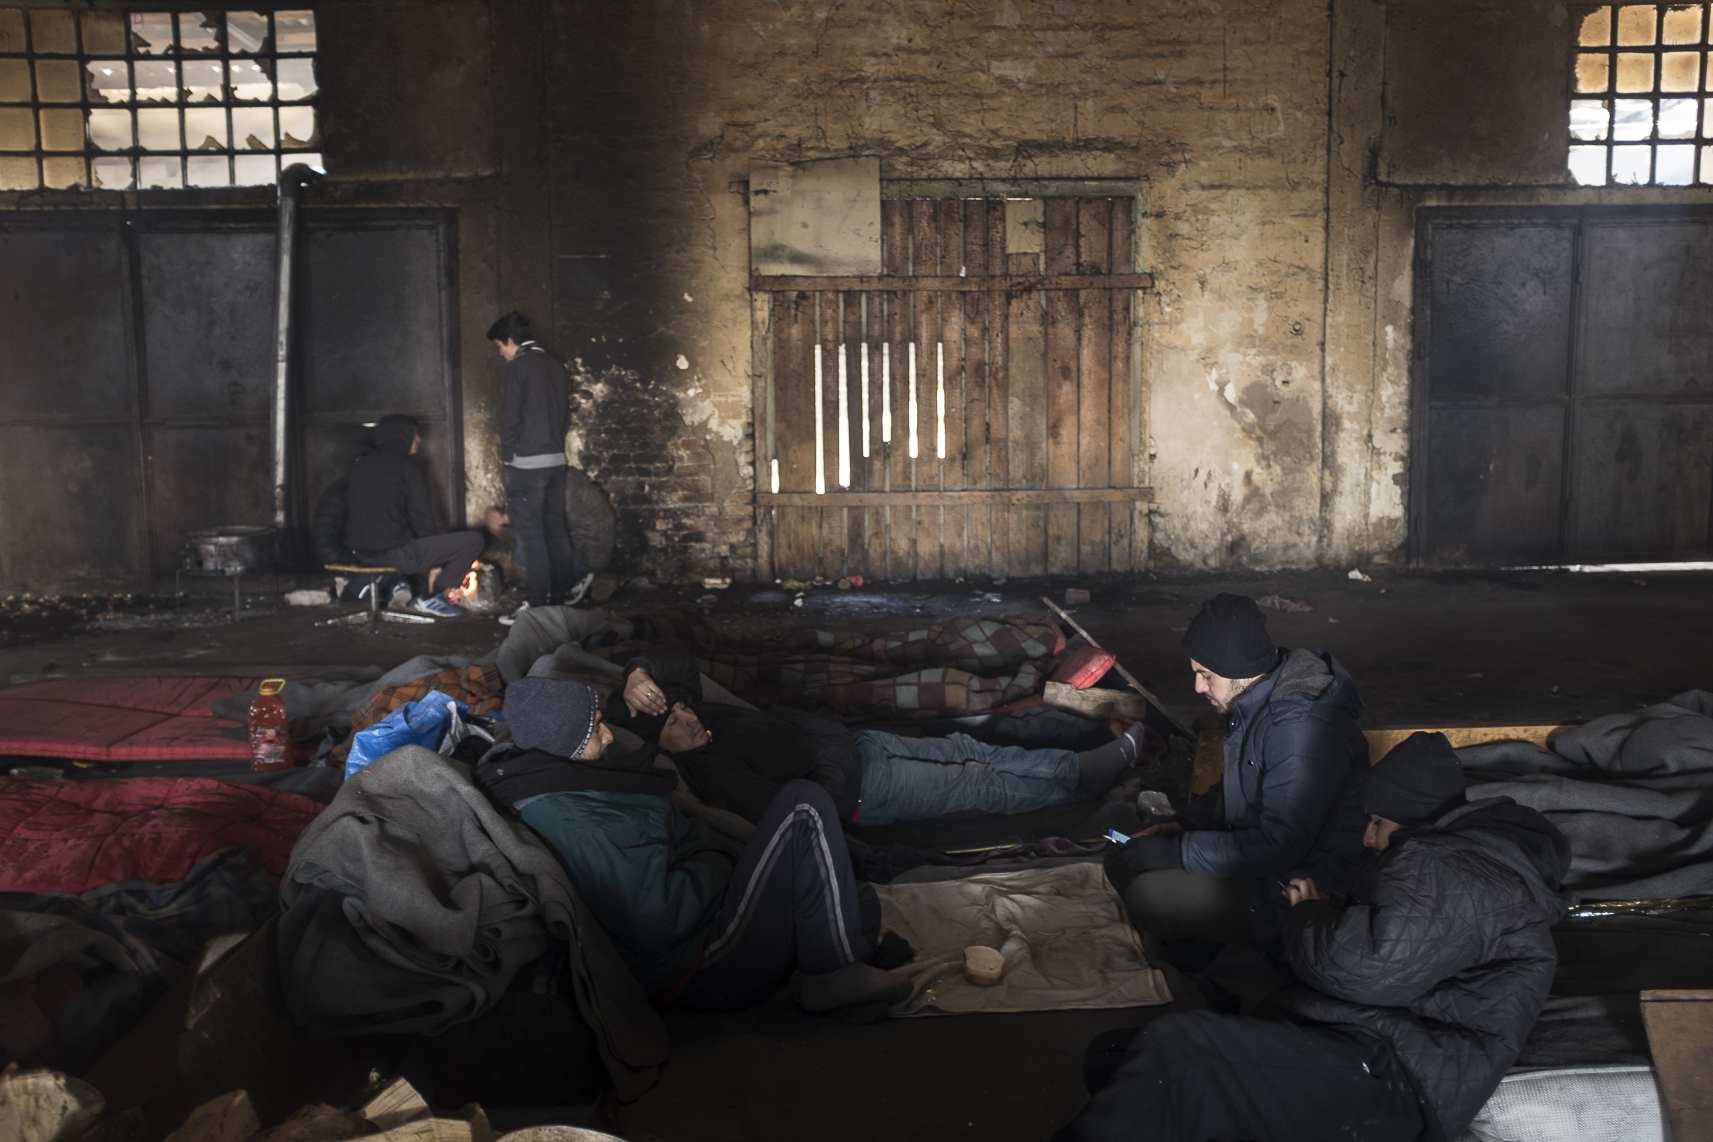 Migrants rest on the ground inside an abandoned warehouse where they took shelter in Belgrade, Serbia. February 13, 2107.